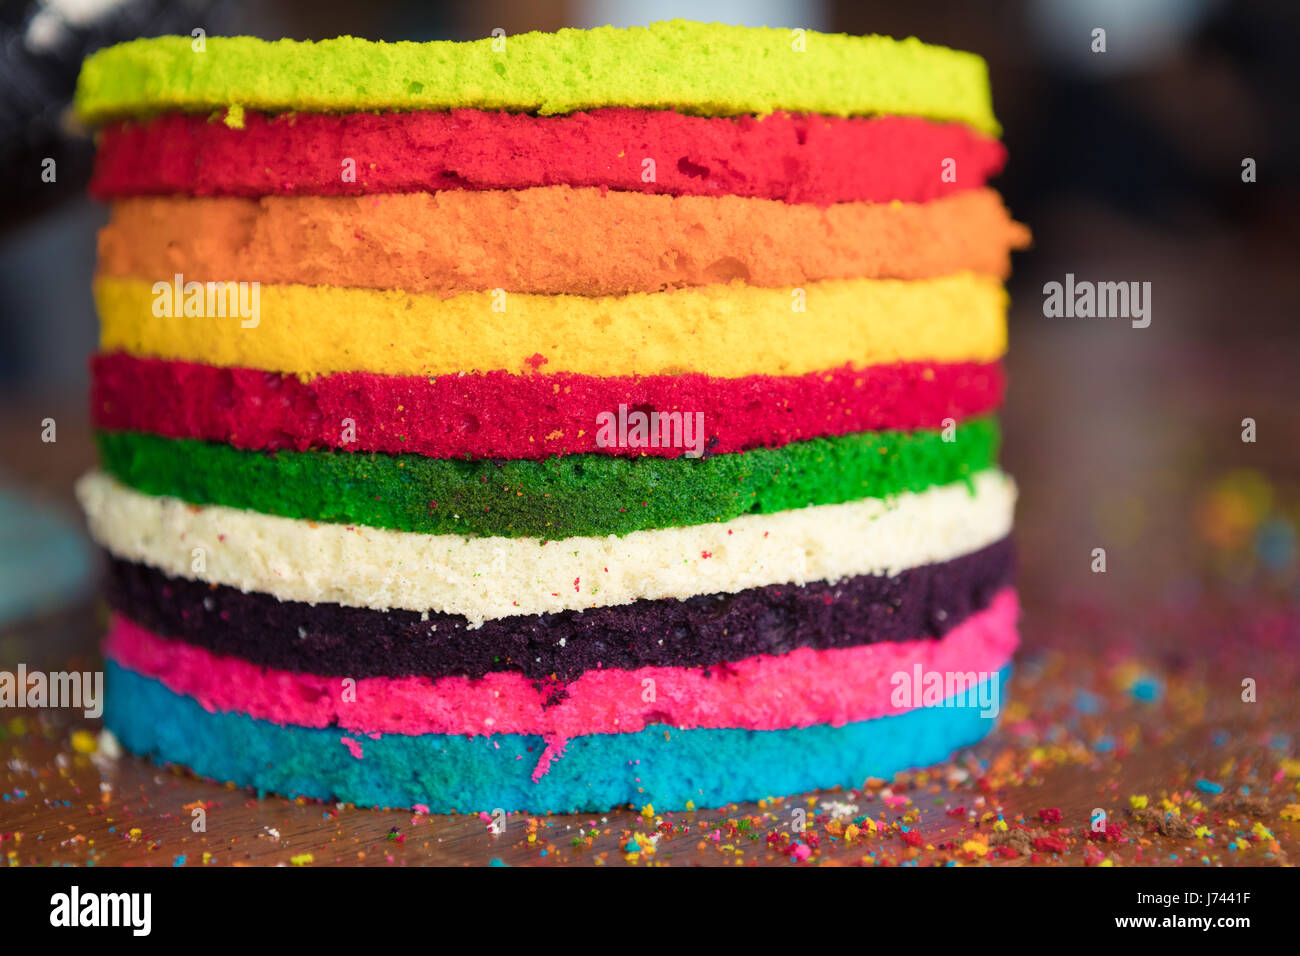 Making A Rainbow Layered Cake